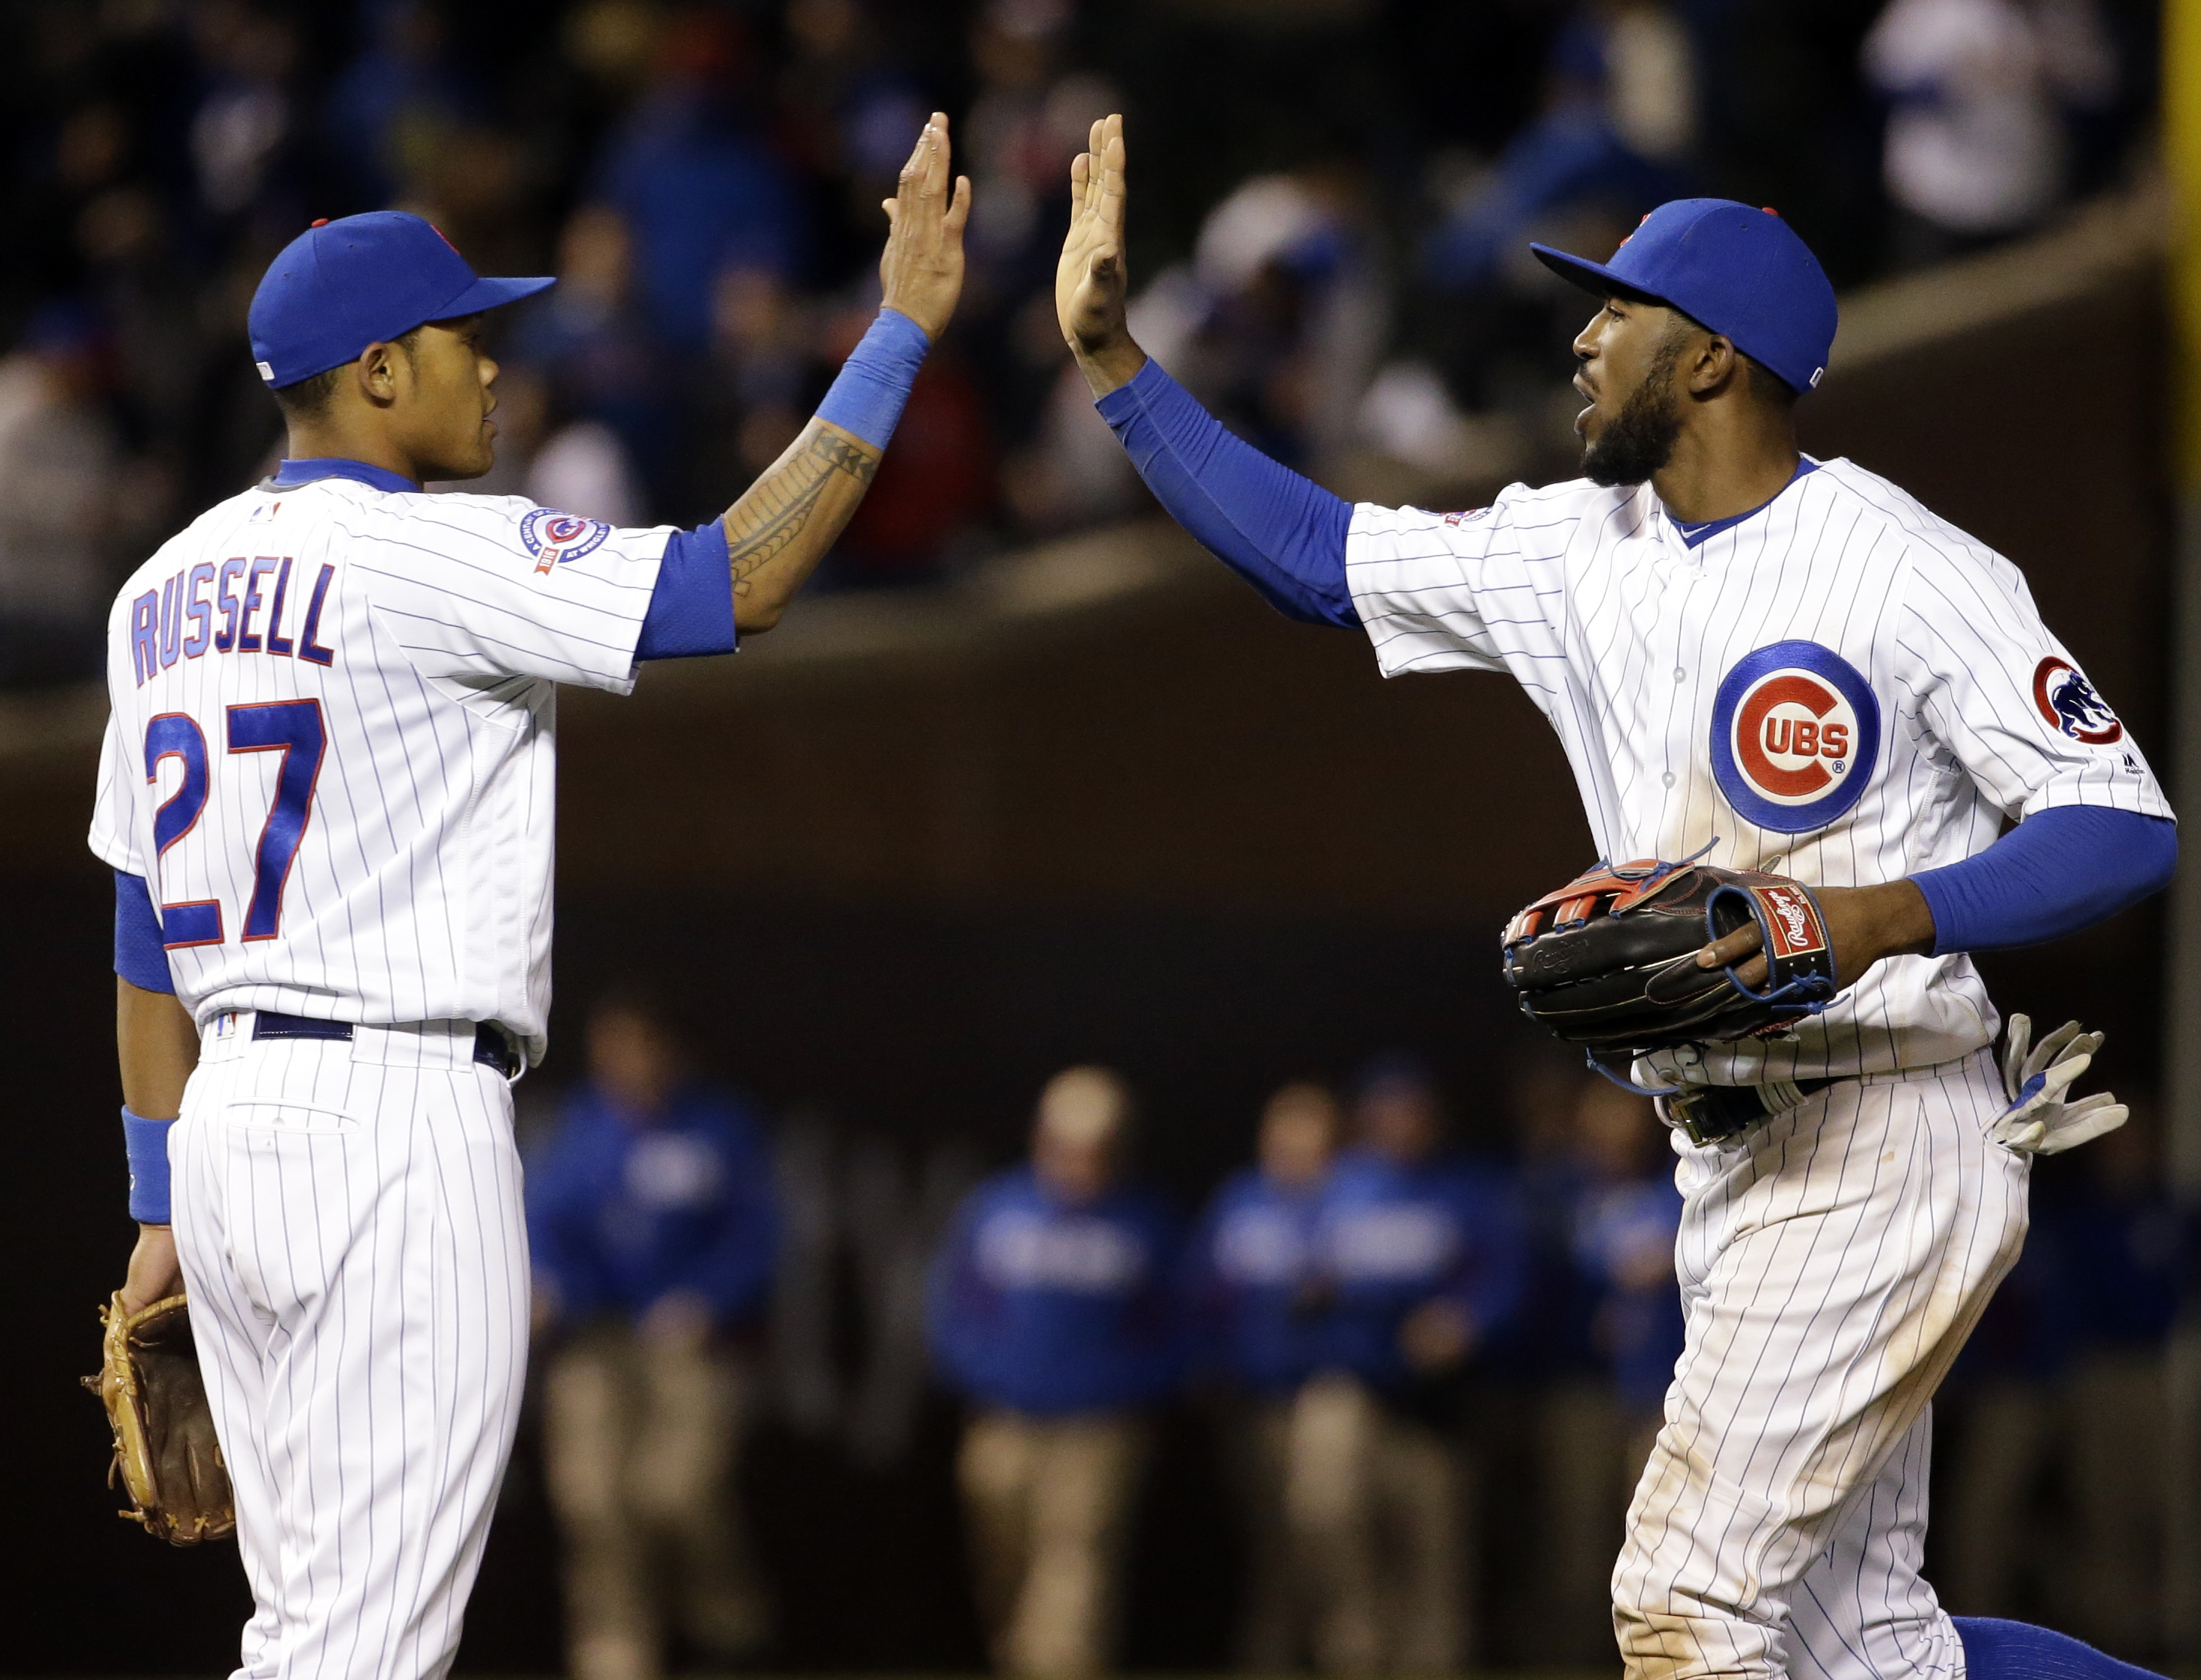 Chicago Cubs' Dexter Fowler, right, celebrates with Addison Russell after the Cubs defeated the Cincinnati Reds 8-1 in a baseball game Thursday, April 14, 2016, in Chicago. (AP Photo/Nam Y. Huh)